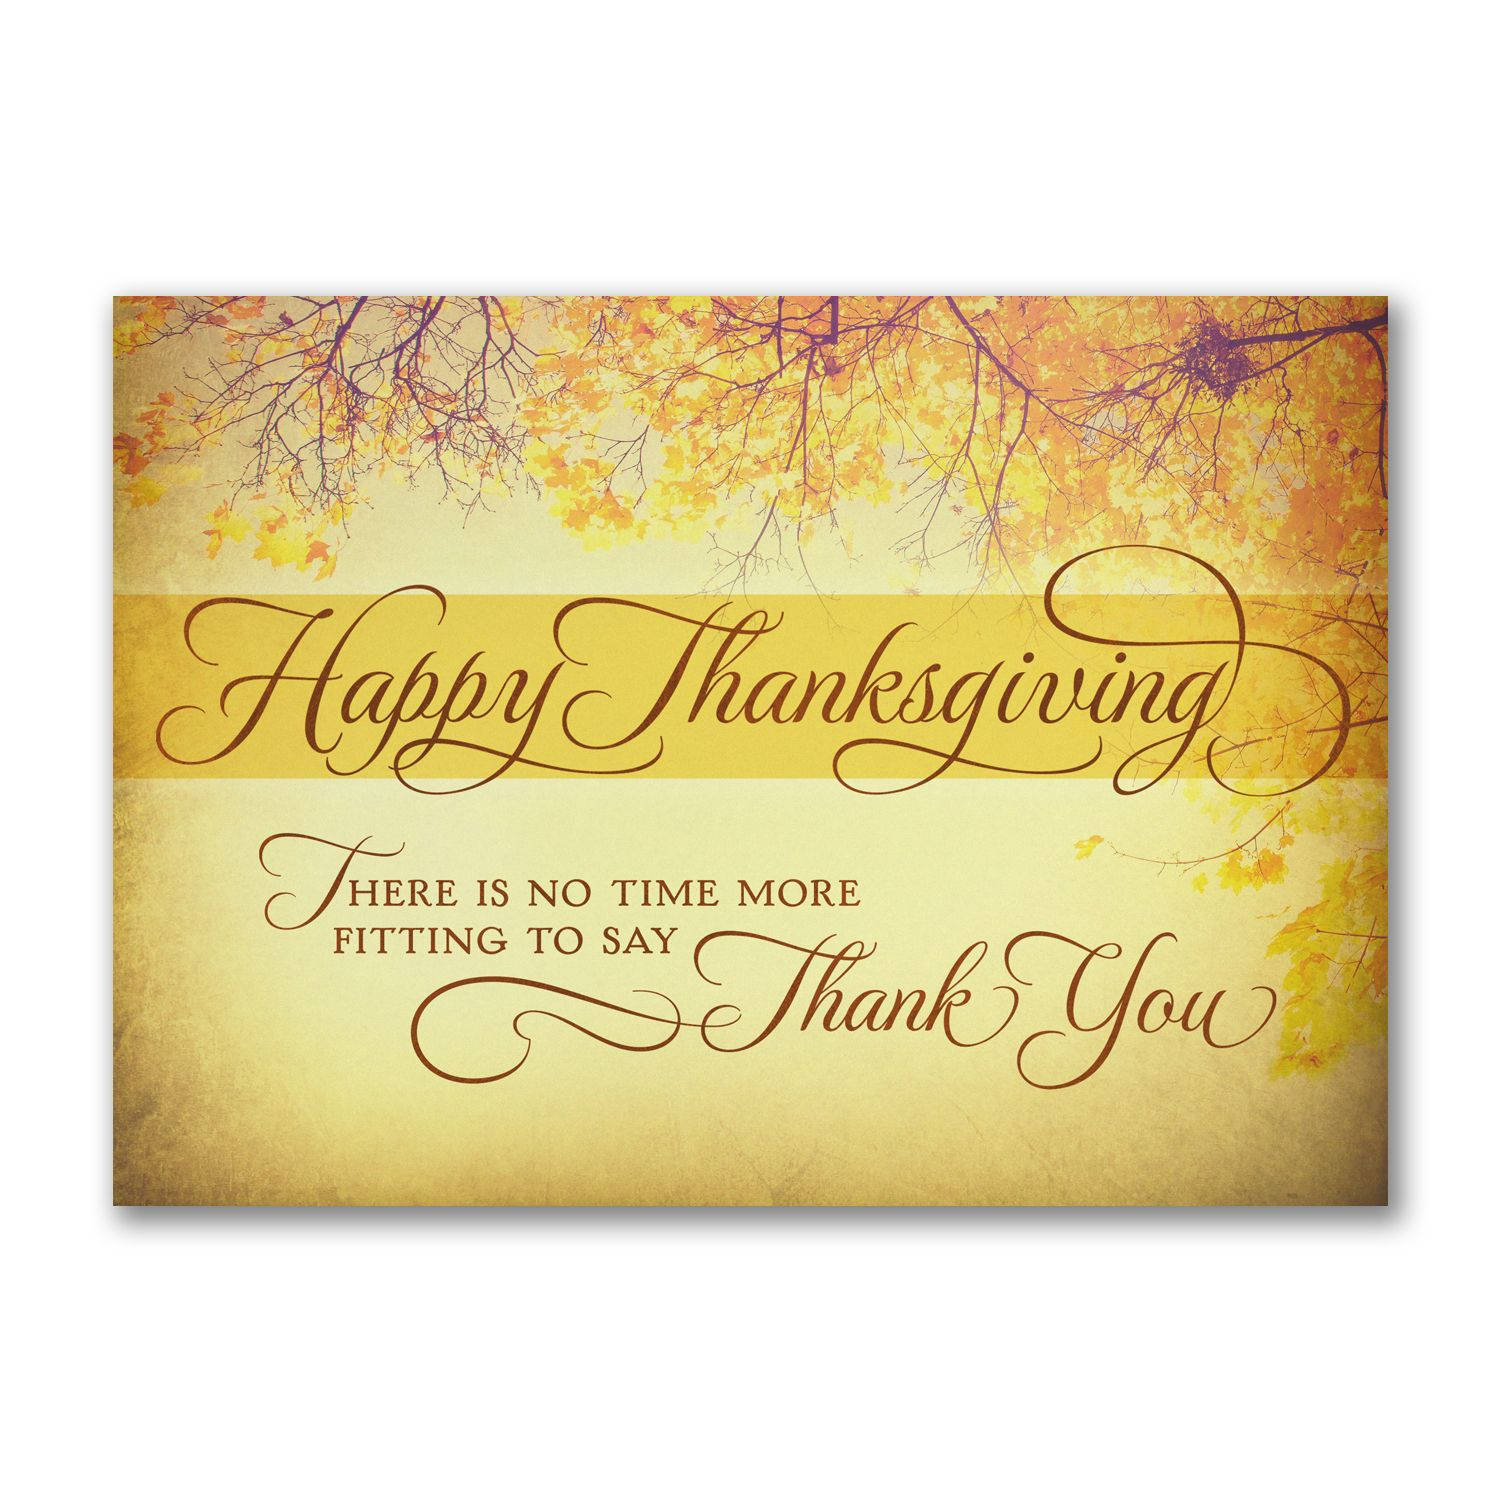 Luminous Thanksgiving Send A Thanksgiving Message With This Luminous Card. Associates And